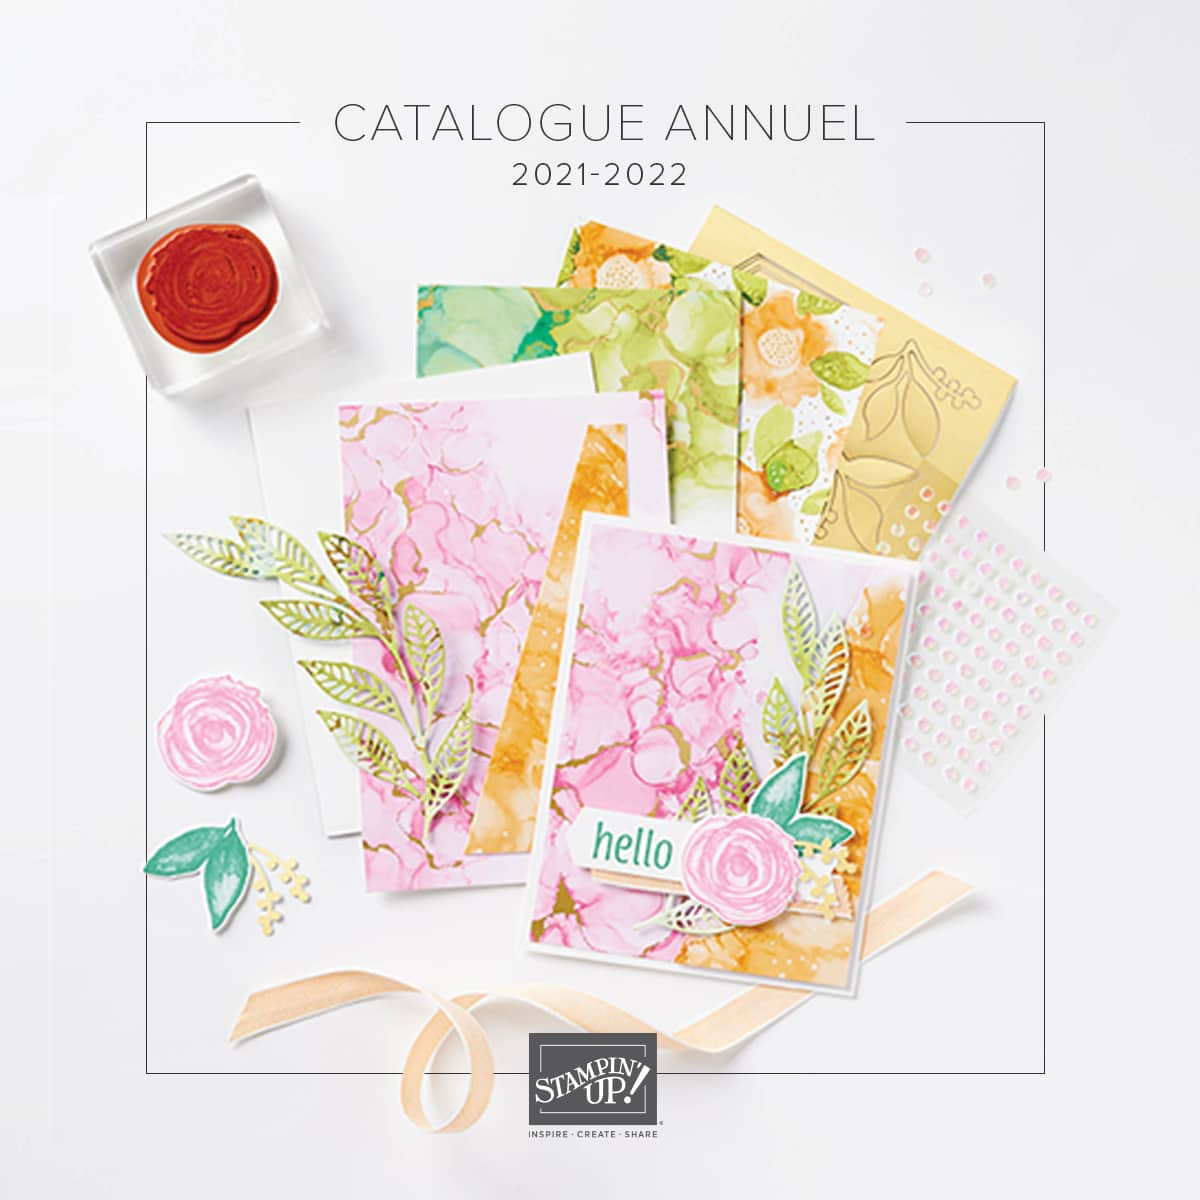 Catalogue Annuel 2021/2022